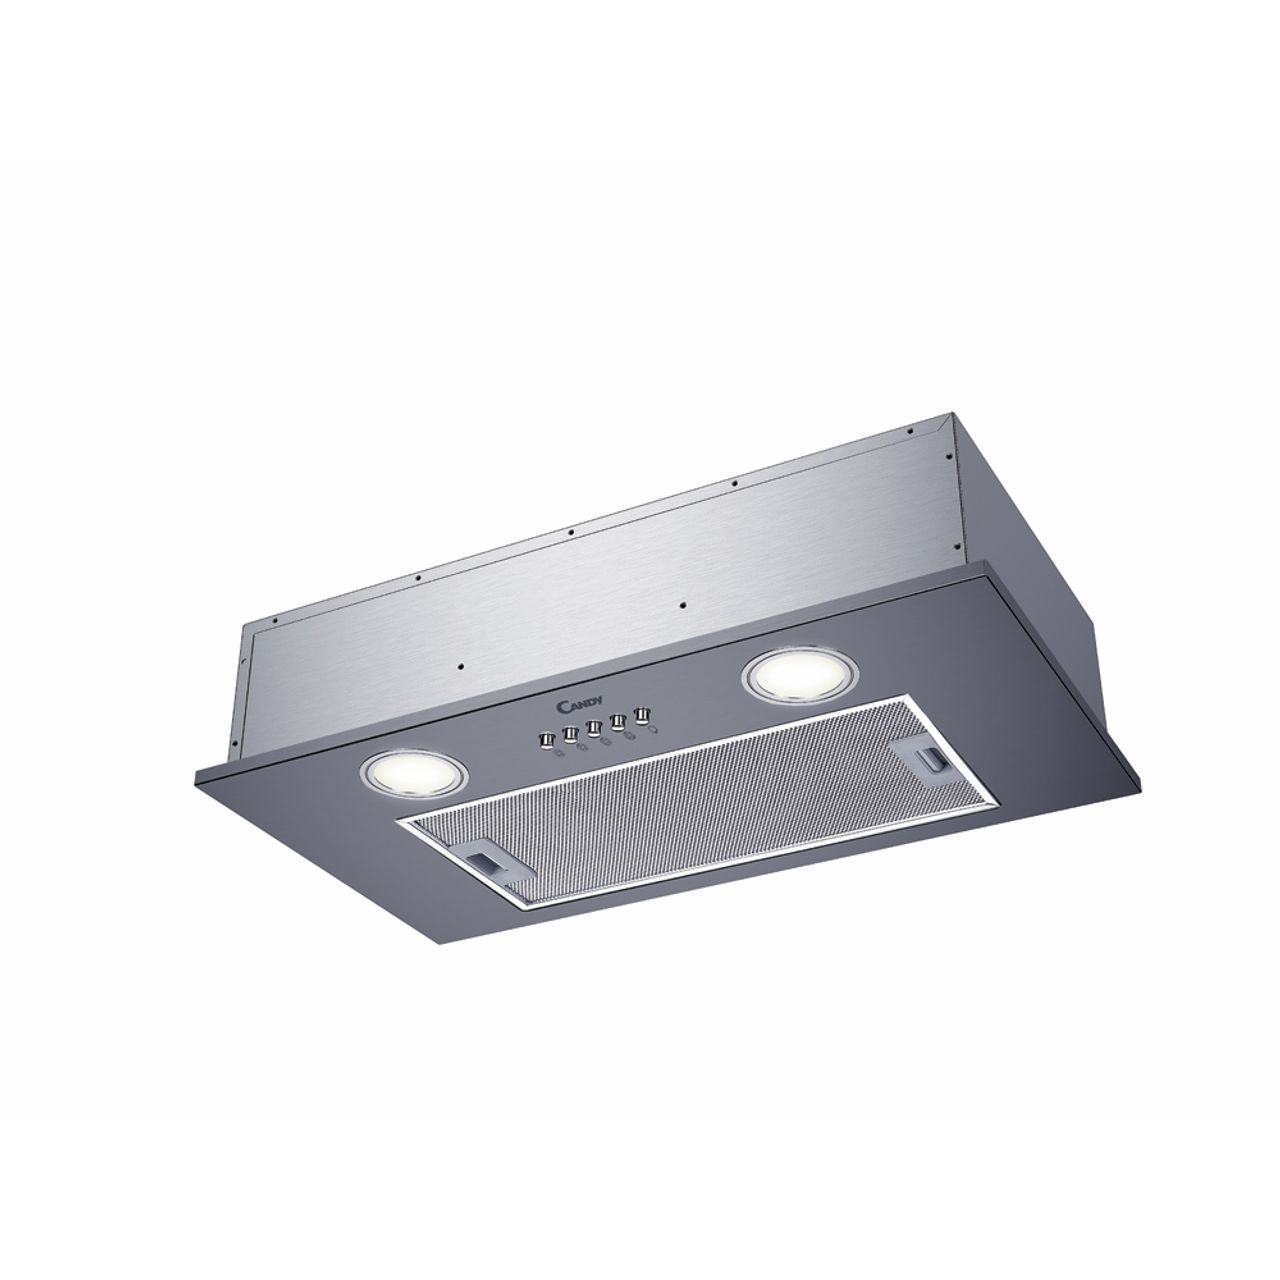 Candy Cbg625 1x Built In Canopy Cooker Hood Stainless Steel